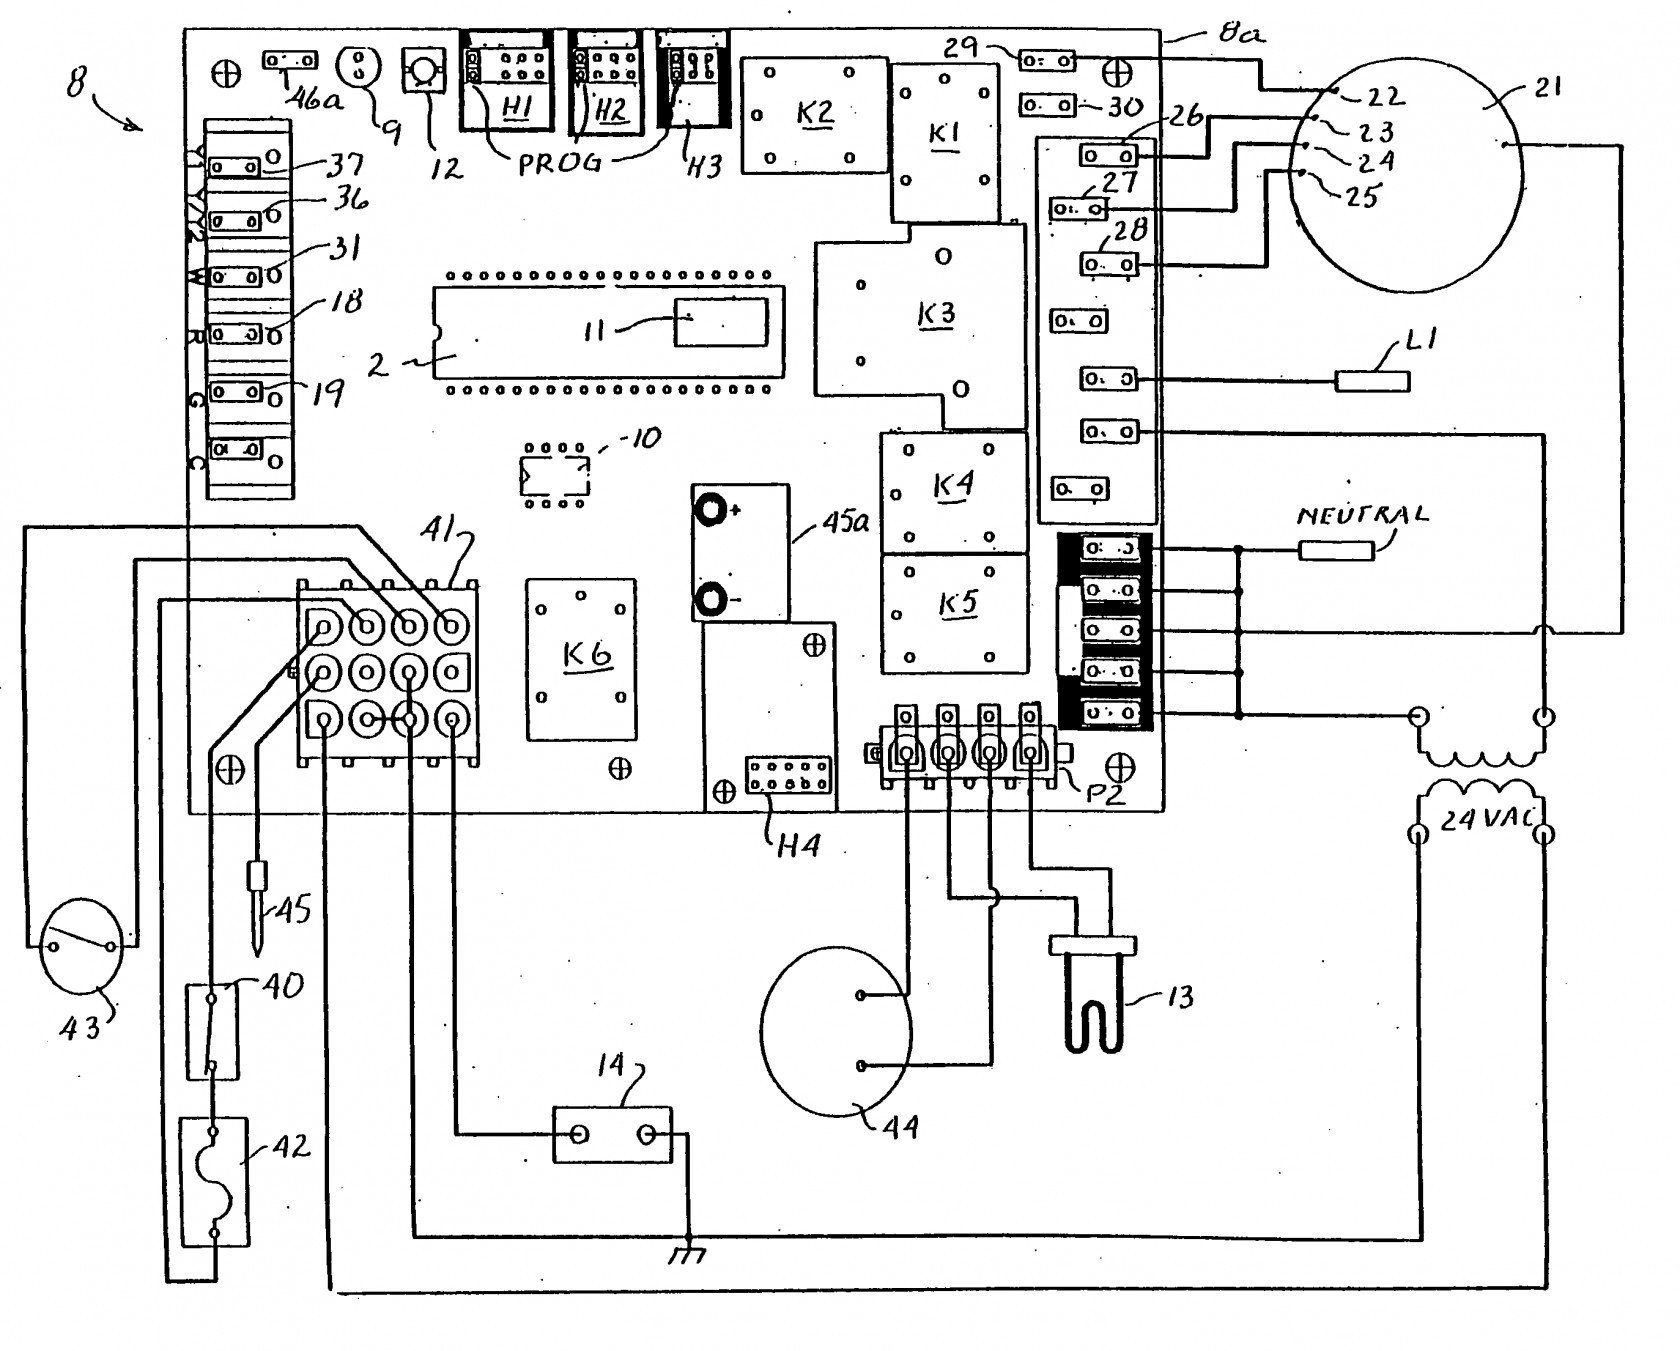 Furnace Control Board Wiring Diagram - 2003 Ford F150 Fuse Diagram -  stereoa.yenpancane.jeanjaures37.fr | Hvac Control Board Wiring Diagram |  | Wiring Diagram Resource